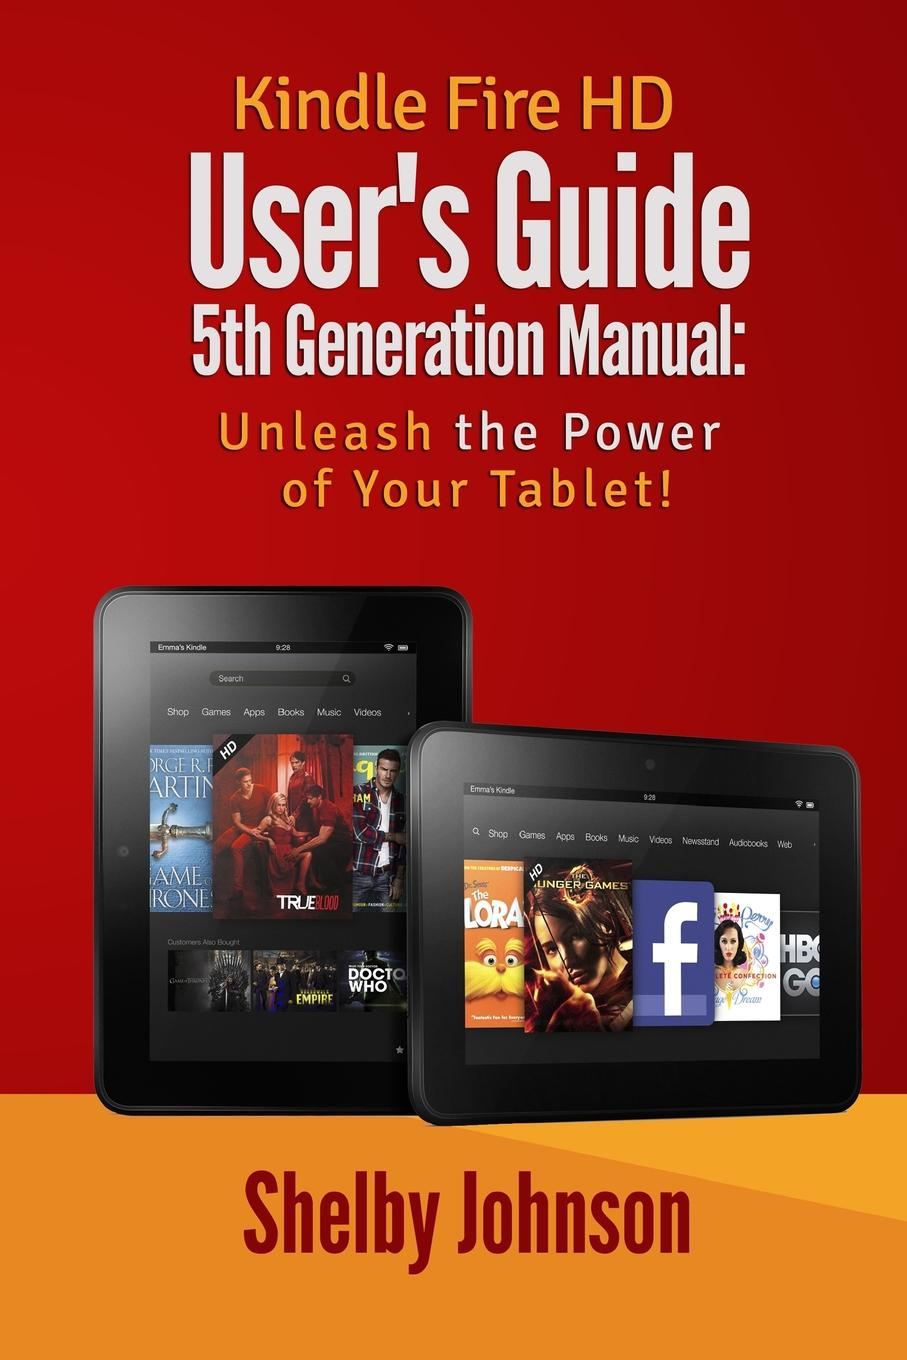 kindle fire hd user s guide 5th generation manual unleash the rh walmart com user guide for kindle fire hd user guide for kindle fire 7